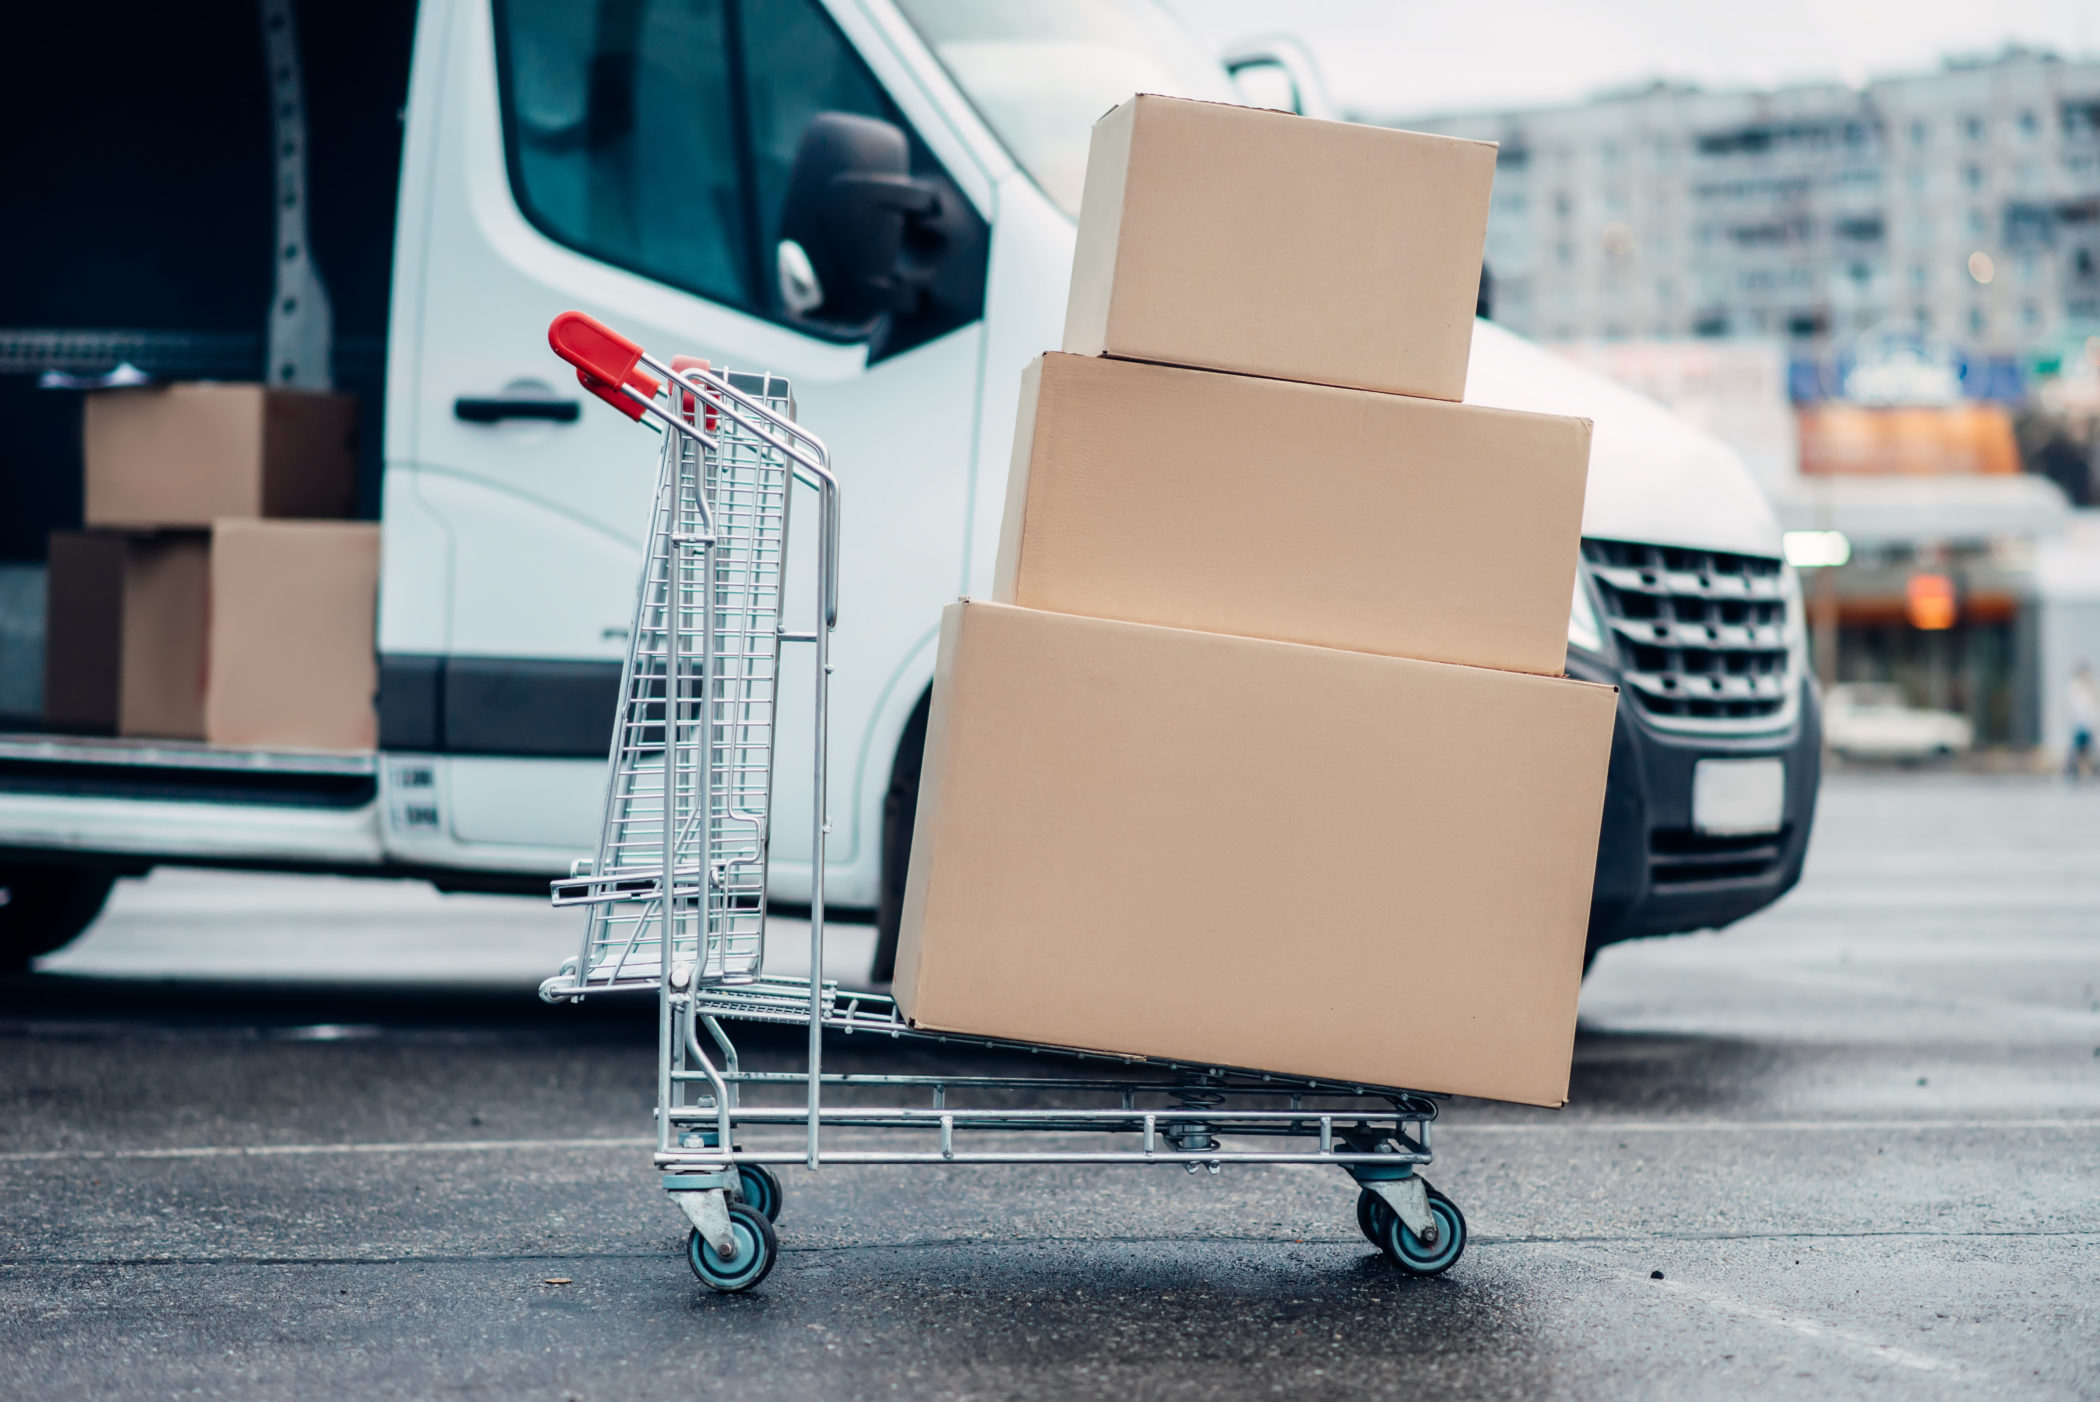 Trolley with carton boxes against truck . Distribution business. Cargo delivery. Empty, clear containers. Mail logistic and post service